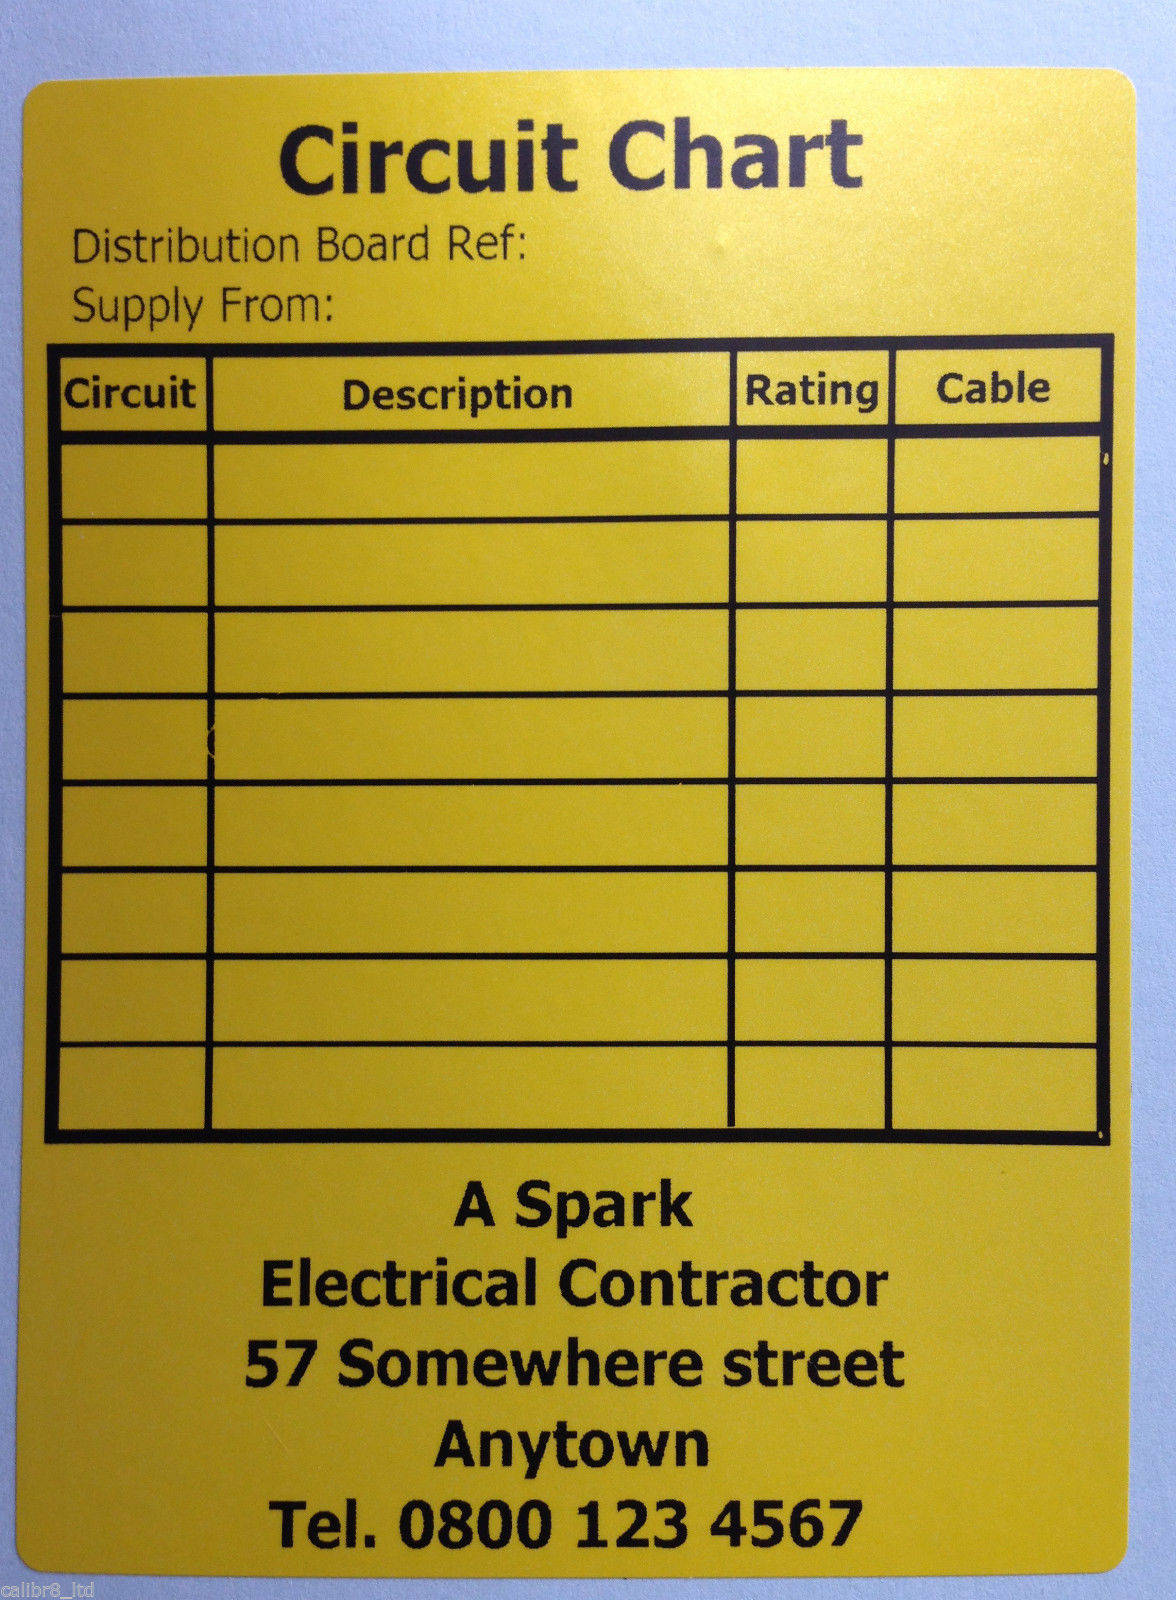 perfect distribution board circuit chart template image resume